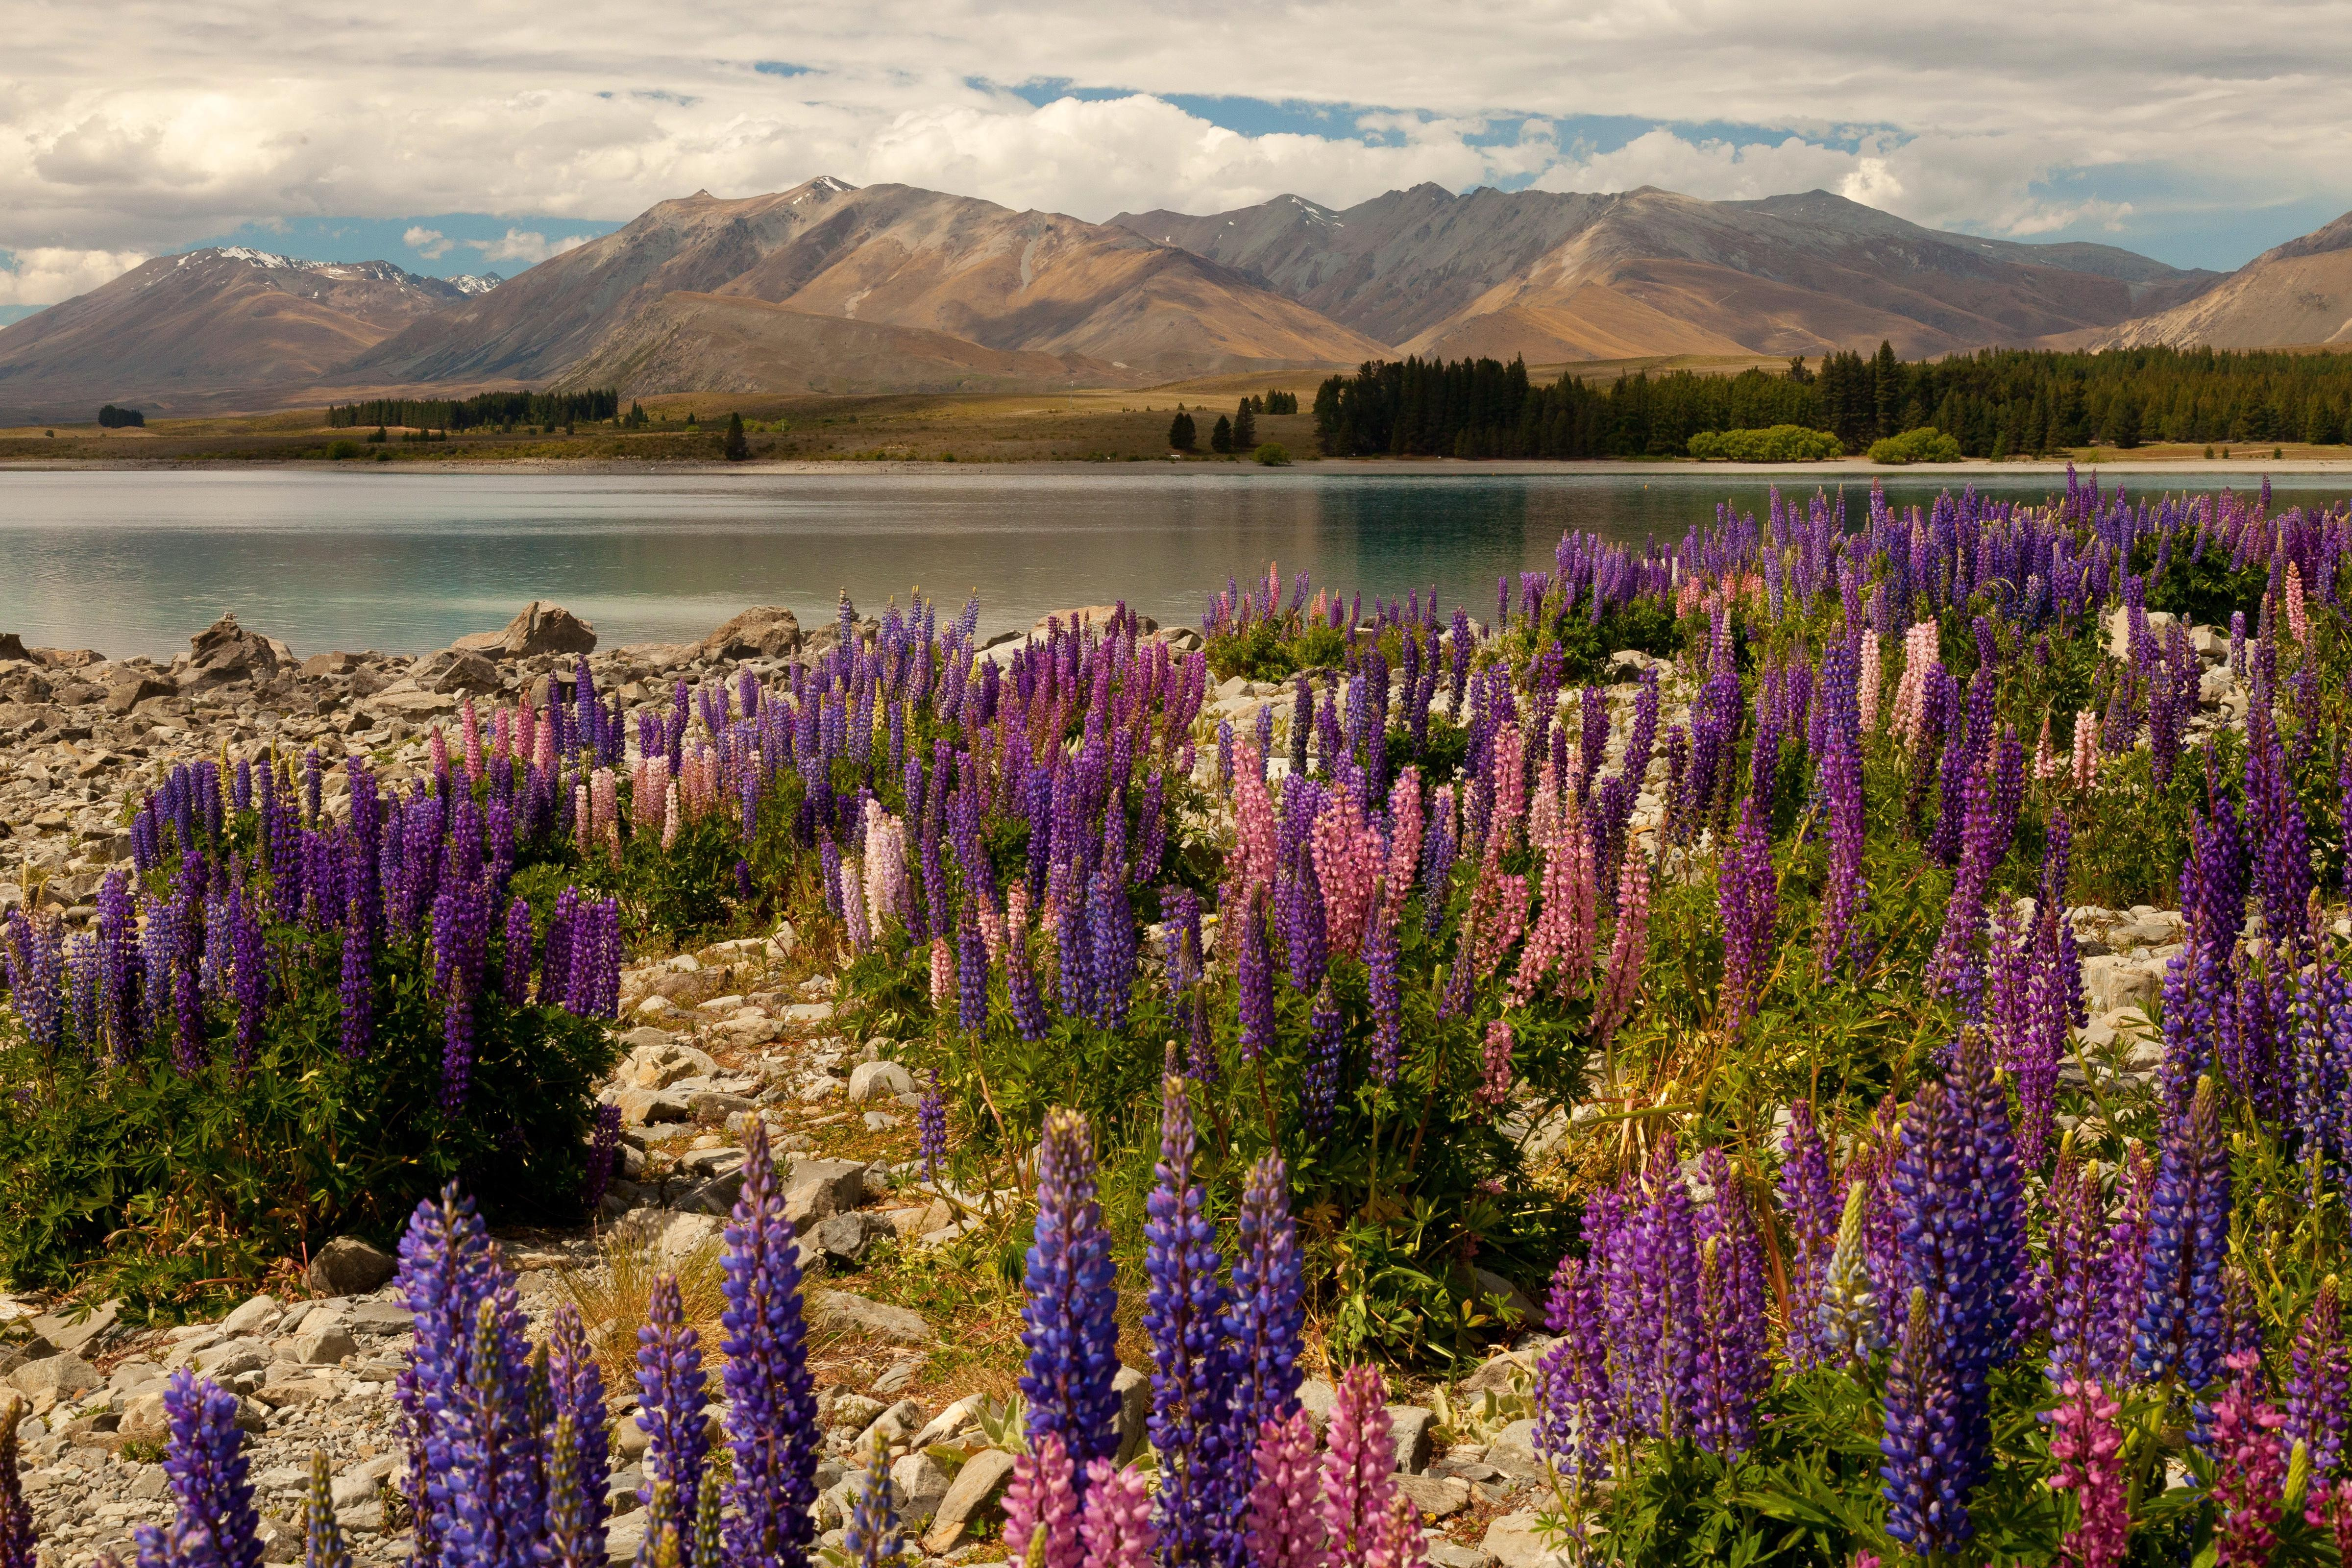 Fall With Water Wallpaper Hd Wallpaper Lavander 5k 4k Wallpaper Lake Tekapo South